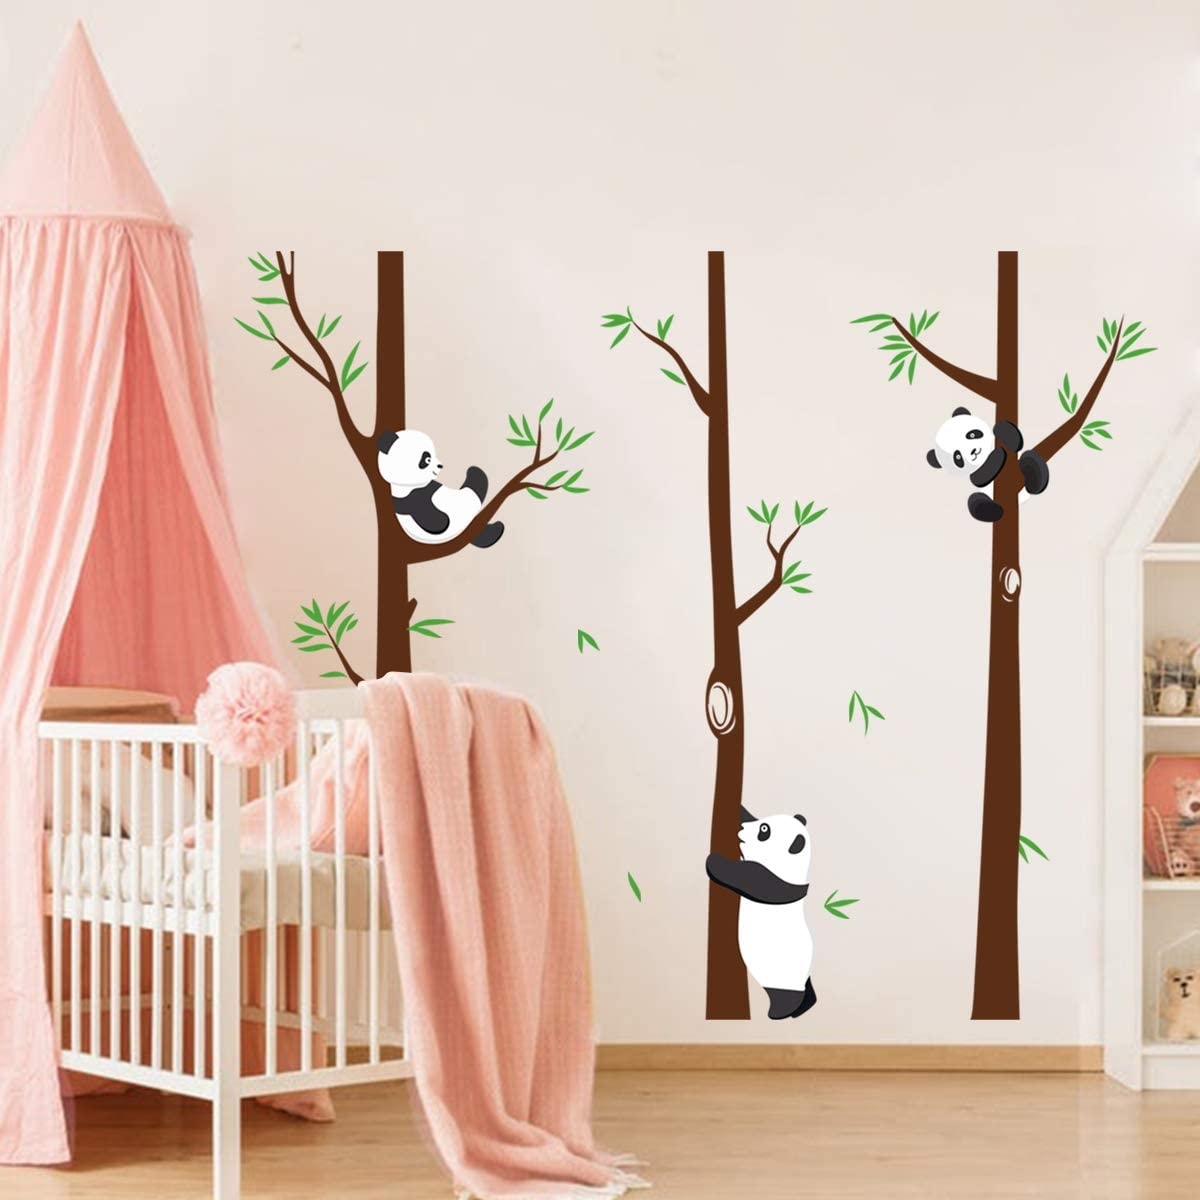 decalmile Panda and Large Tree Wall Stickers Kids Room Wall Decals Baby Nursery Childrens Bedroom Playroom Wall Decor Height: 171cm